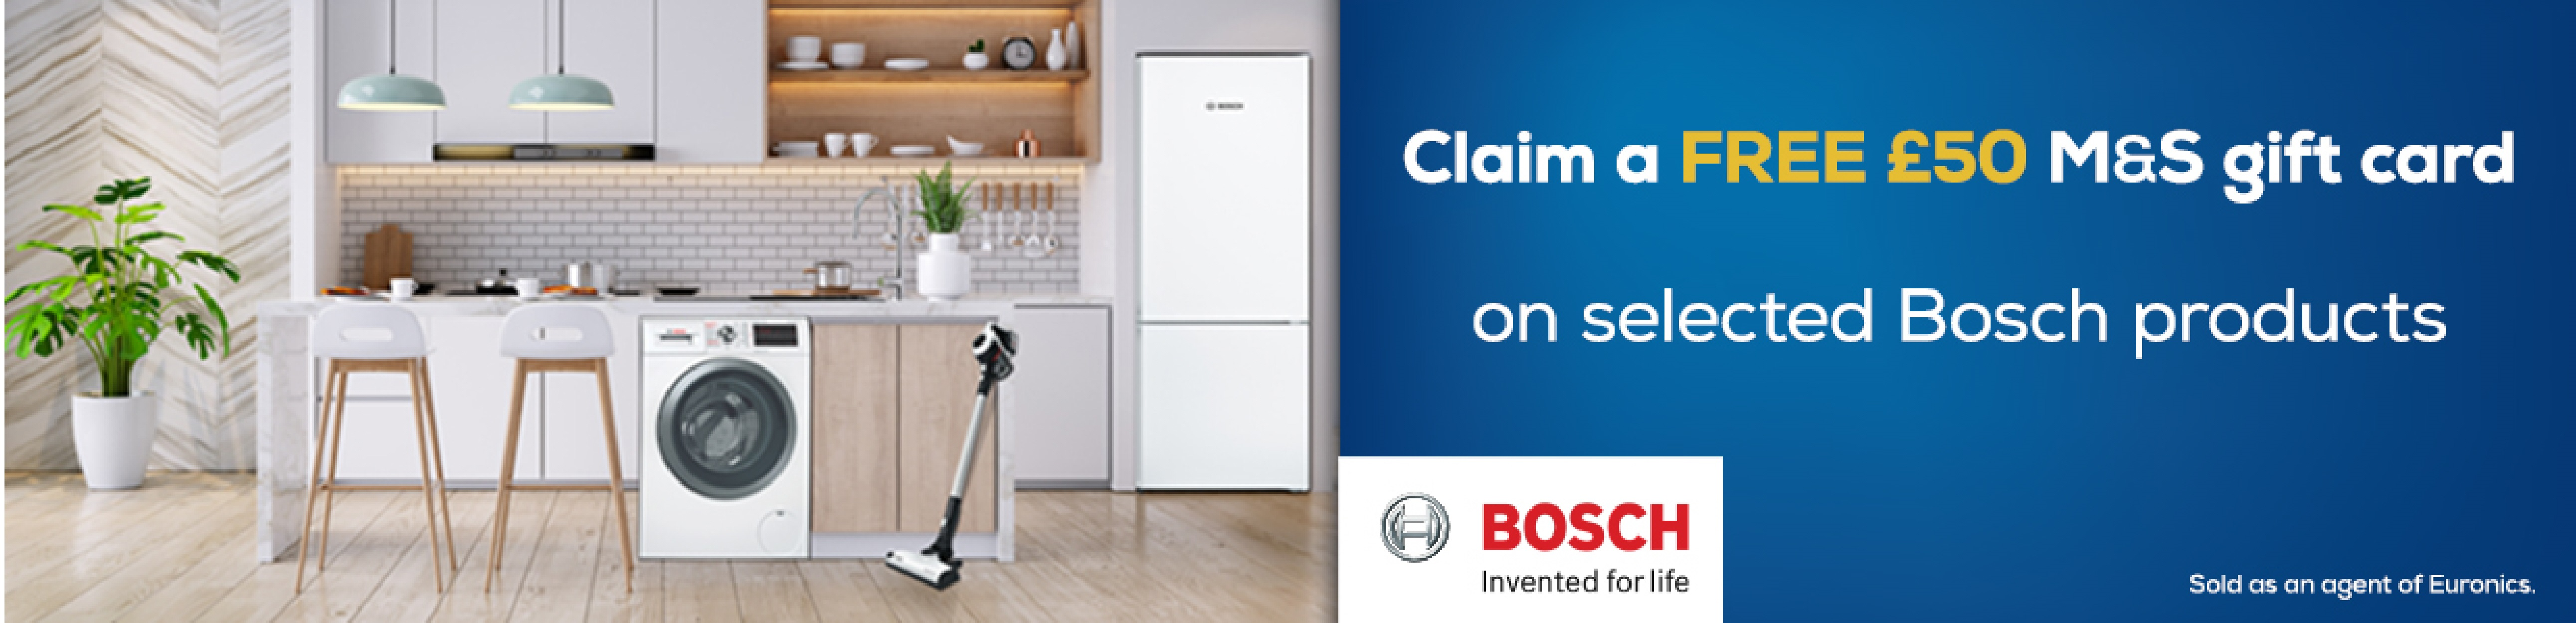 Bosch £50 M&S Card Promotion